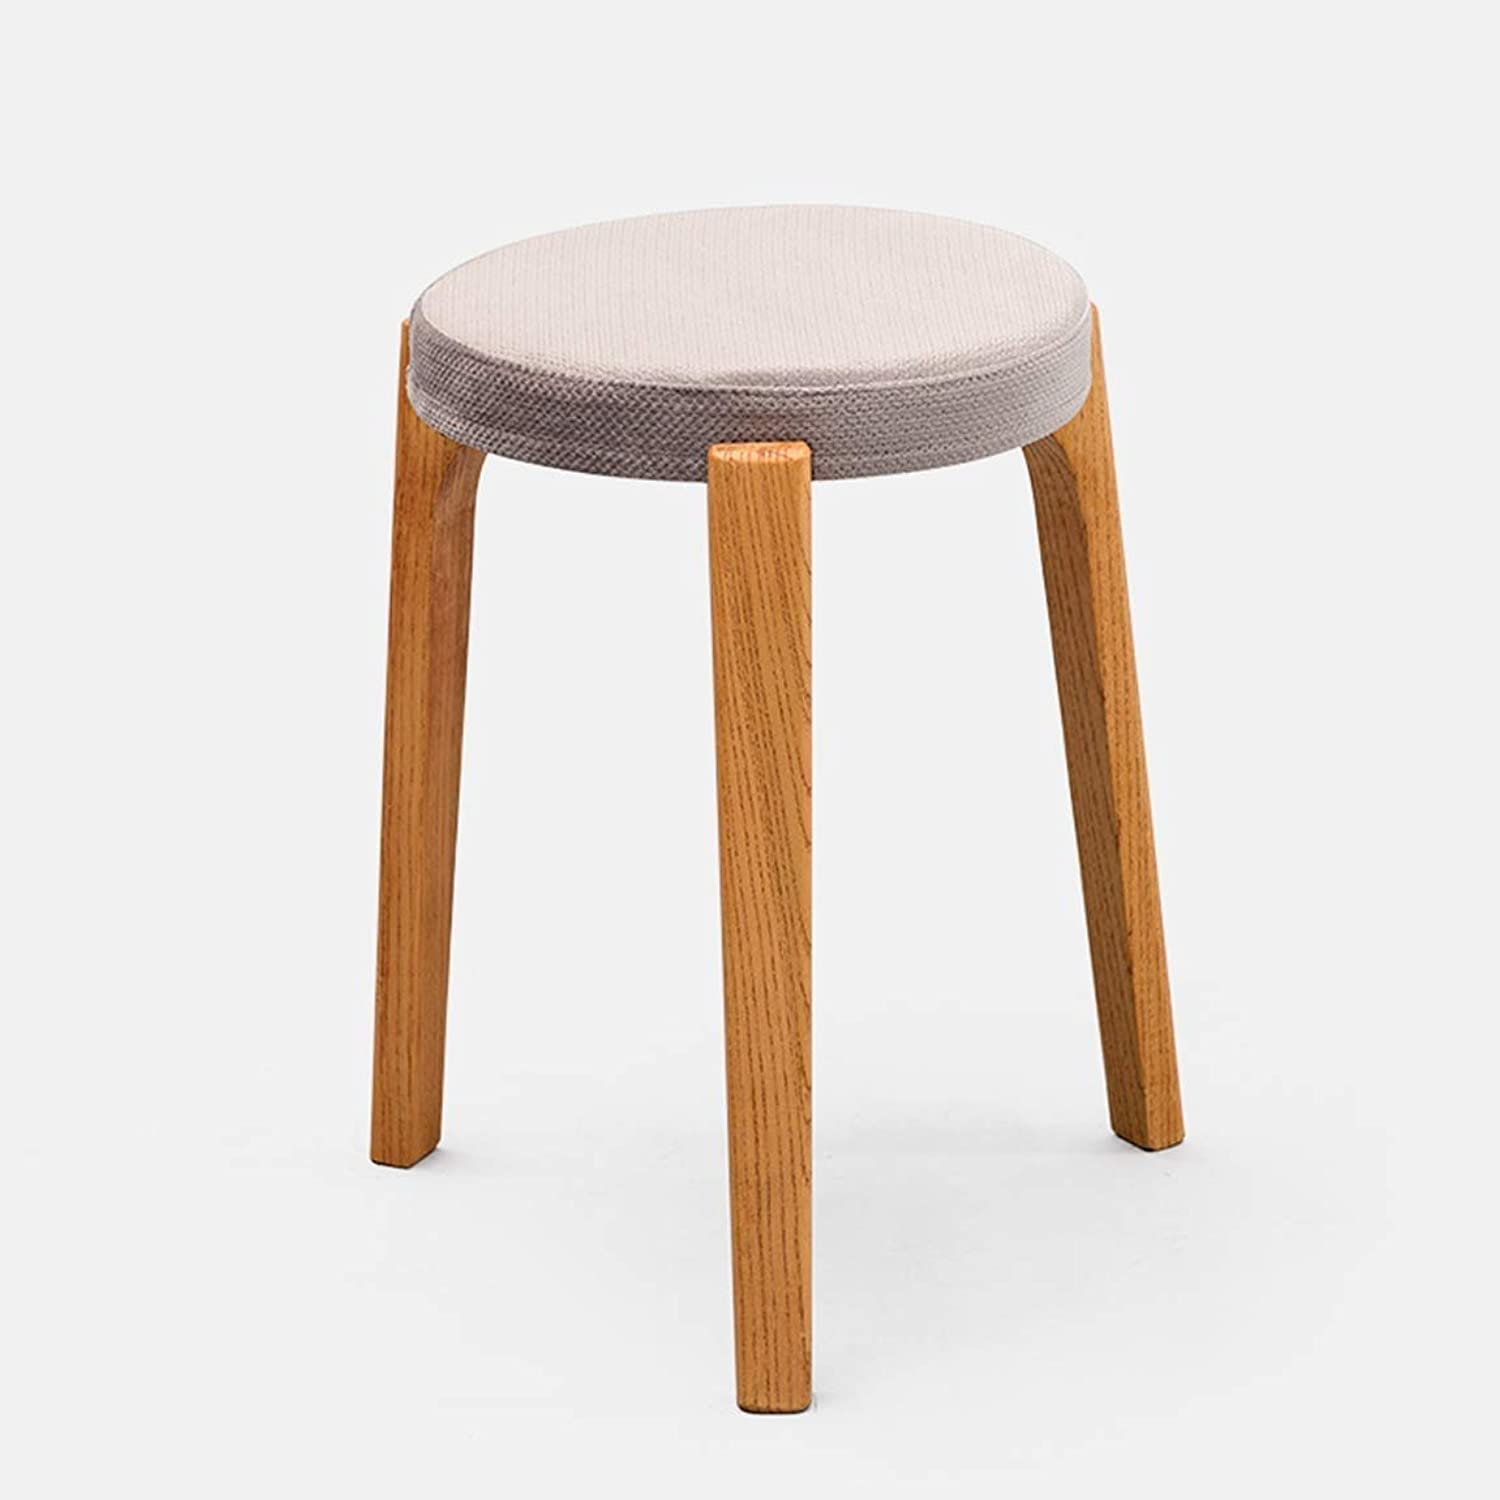 Creative Small Stool Solid Wooden Dining Stool, Square Stool, Dressing Stool, Simple Fashionable Dressing Stool, Bench, Household Stool 7 GMING (color   Wood)